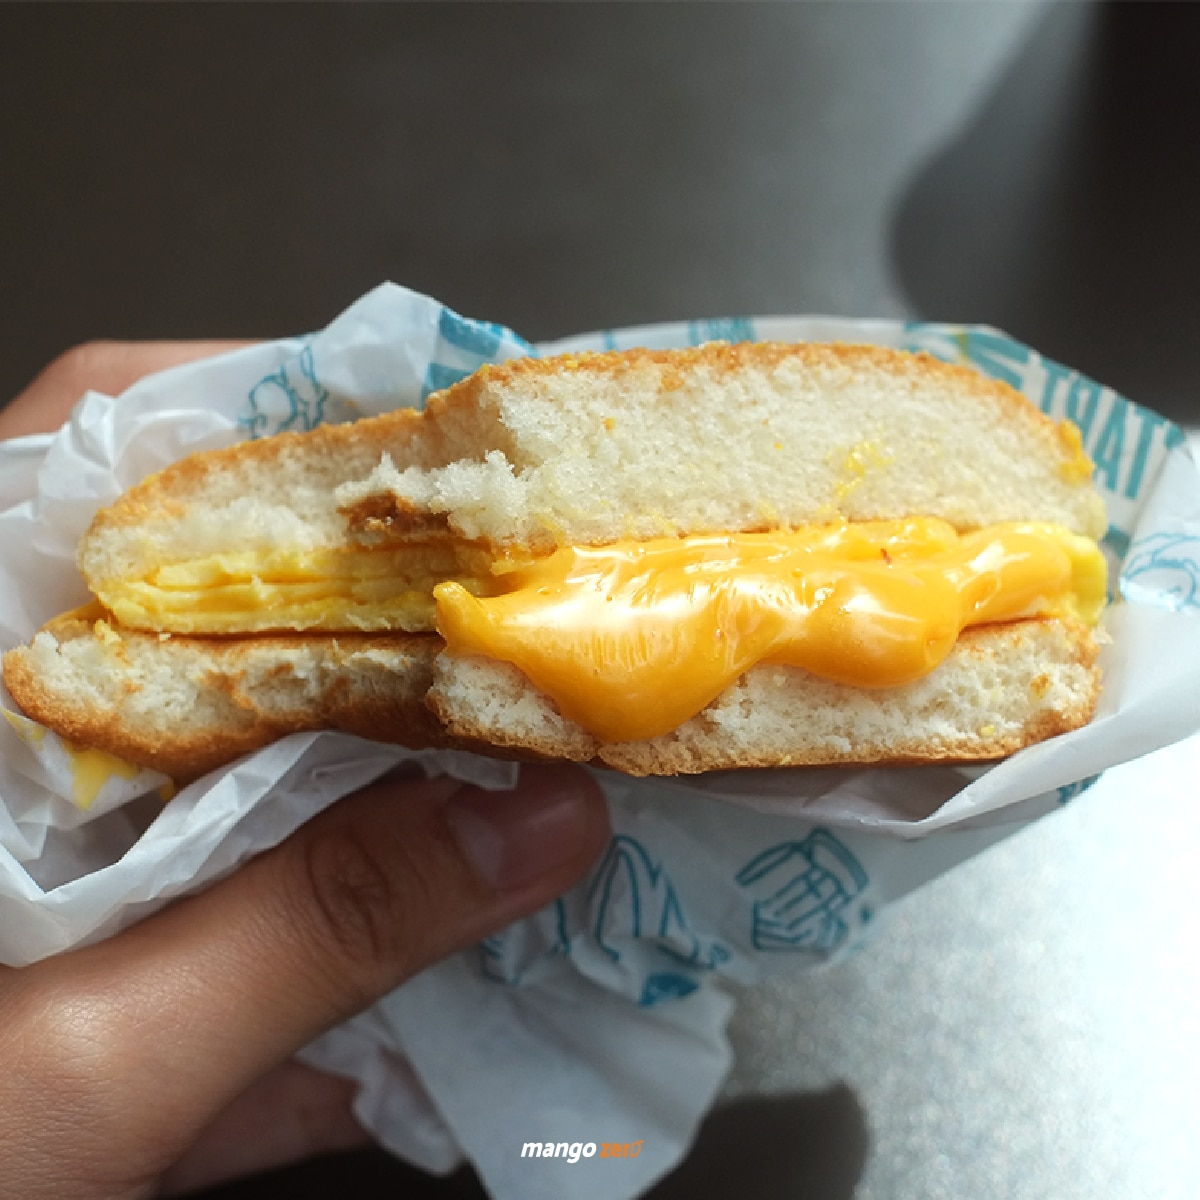 mcdonalds-cheesy-egg-bun-and-sweet-potato-desserts-04